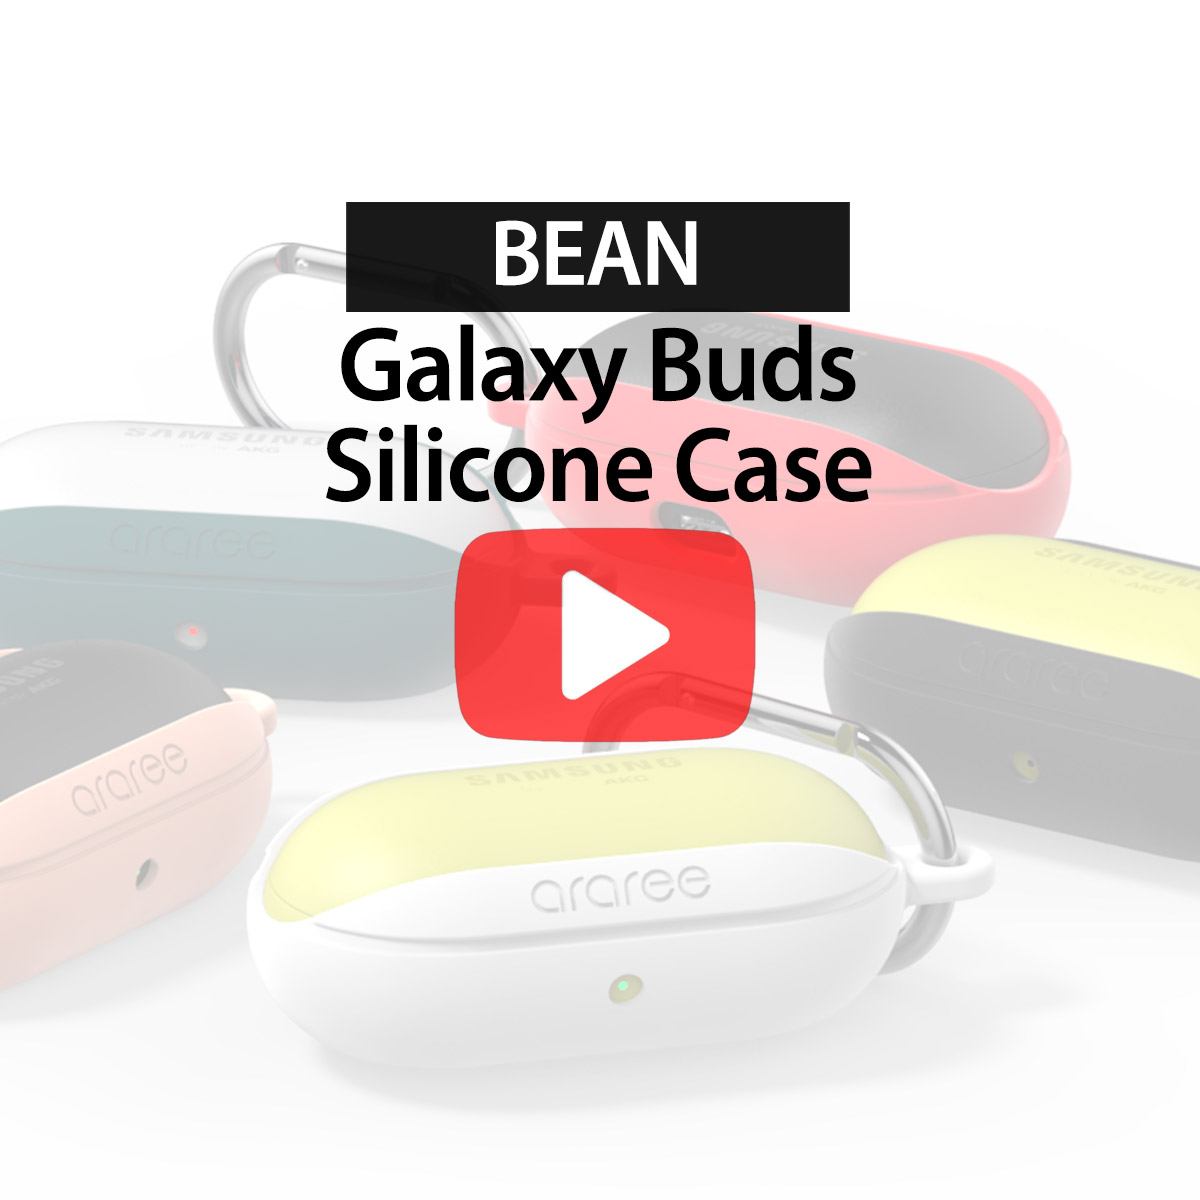 [araree] Galaxy Buds Silicone Case, Bean